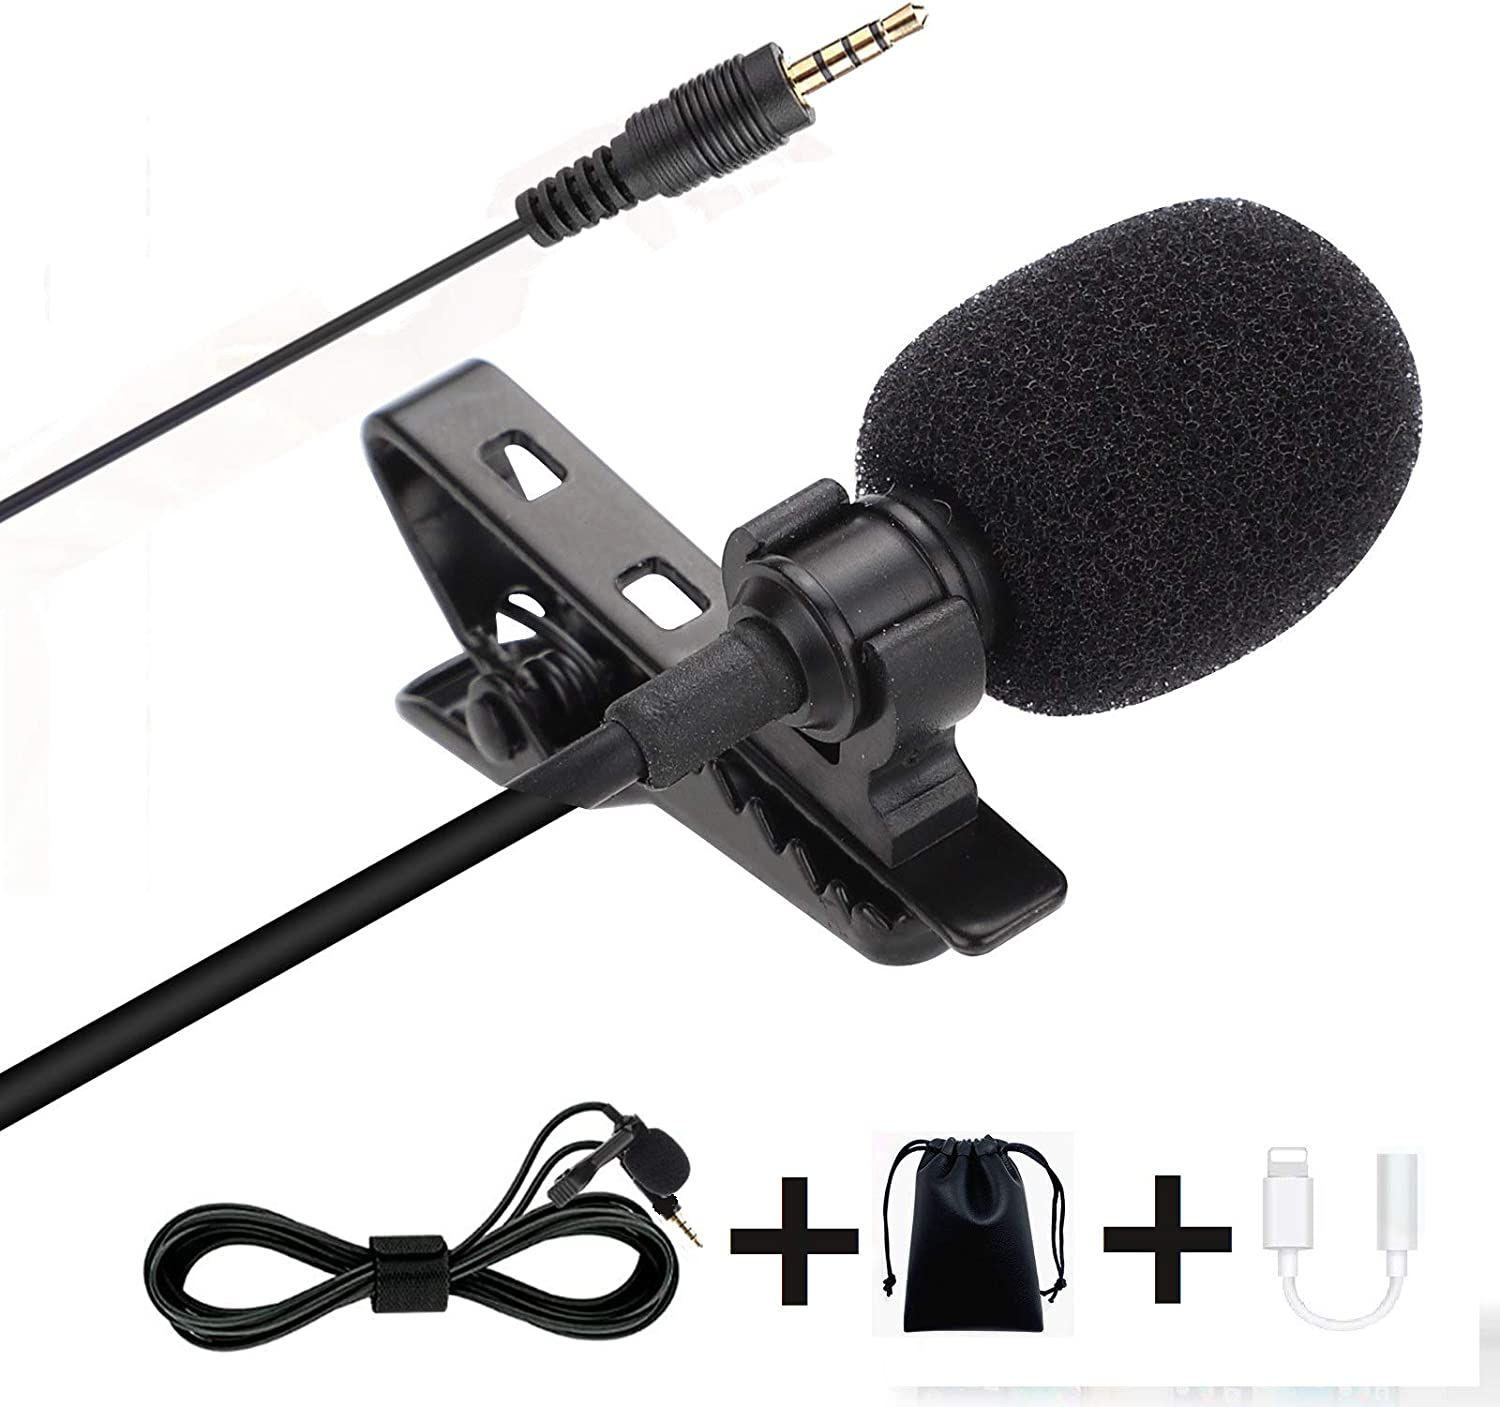 Voice Professional Lavalier Lapel Microphone, Omnidirectional Mic for Desktop PC Computer, Smartphone, iPhone, YouTube, GoPro, Bloggers, Camcorder for Podcast, Vlogging, and DJs